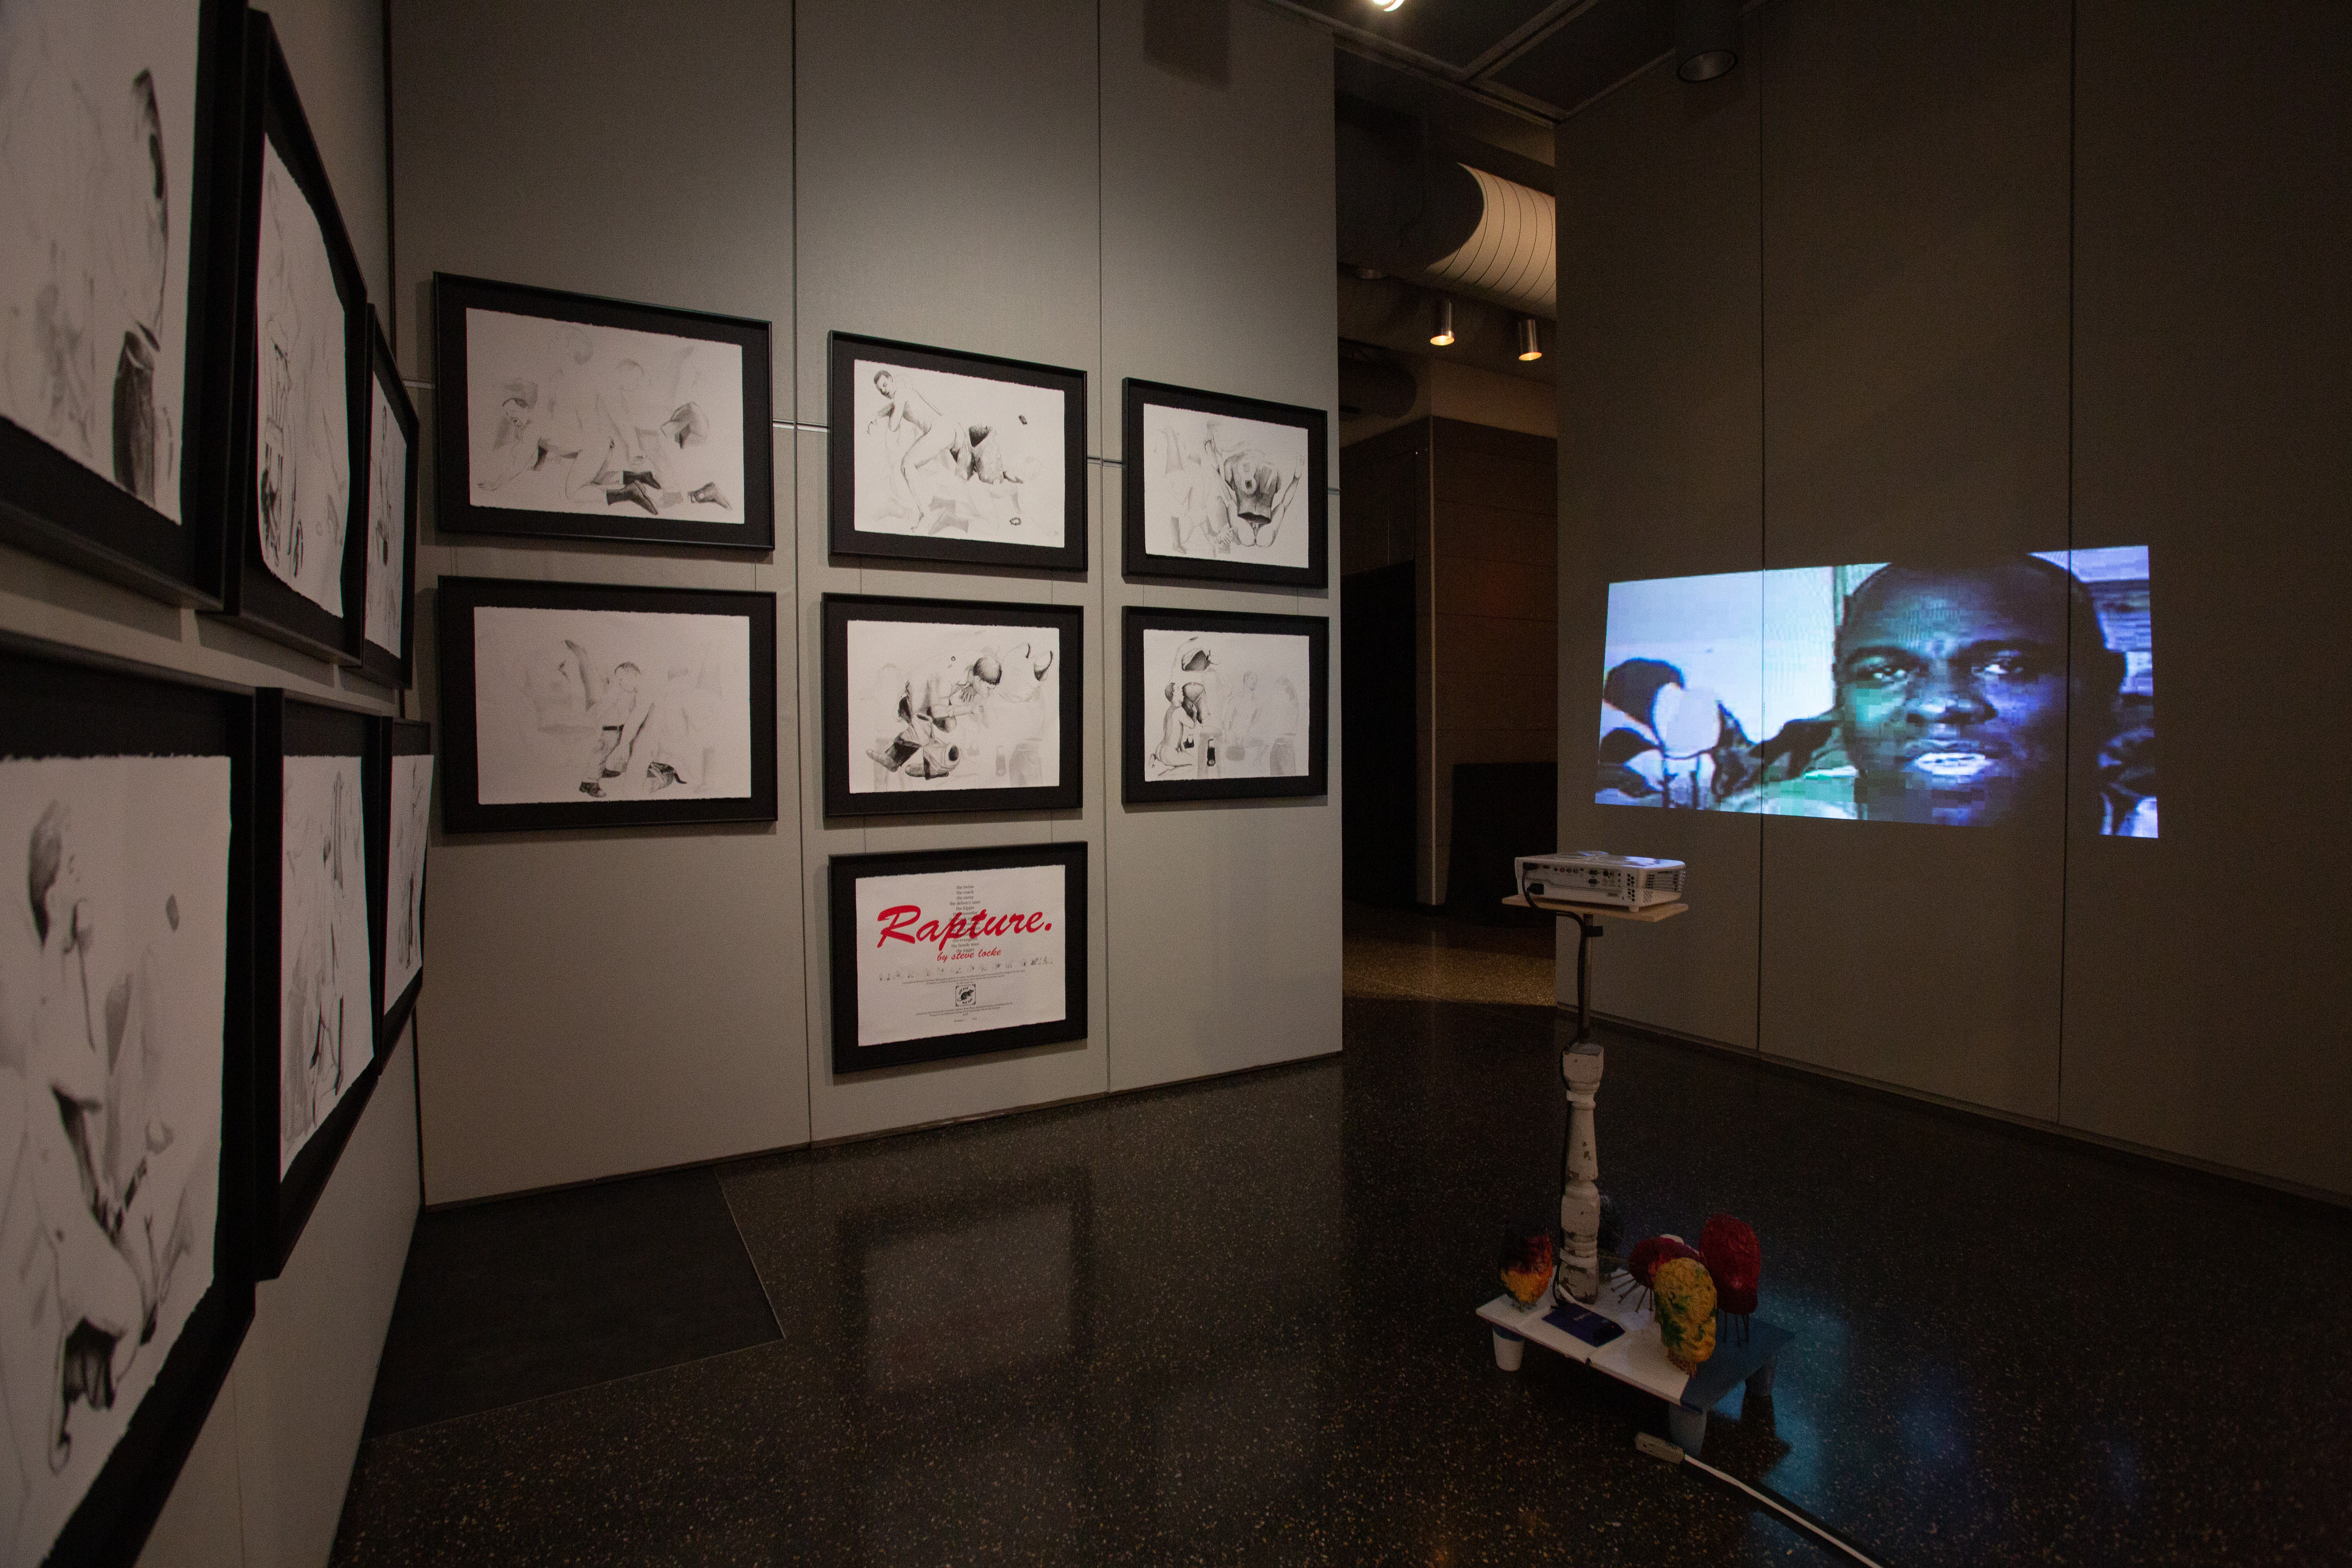 Gallery space with a grid of prints on the wall, a projector stands in the middle of the room and projects a video onto the rightmost wall